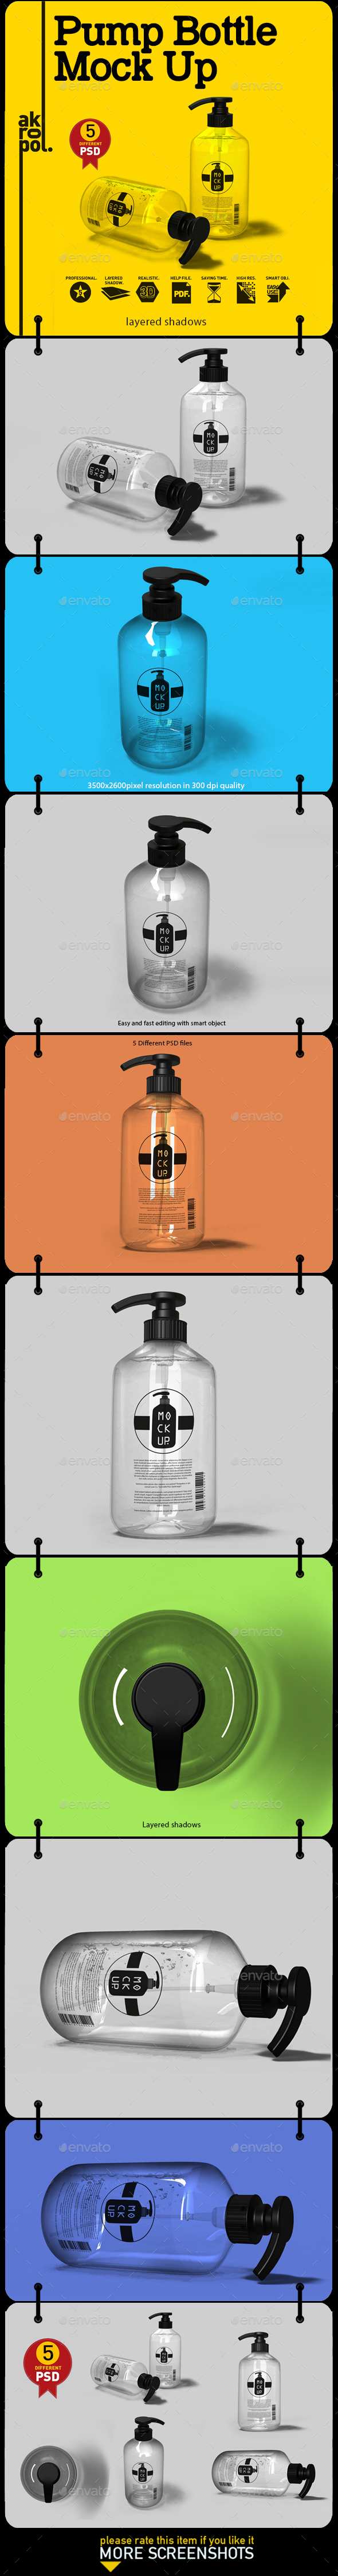 Pump Bottle Mock Up - Product Mock-Ups Graphics